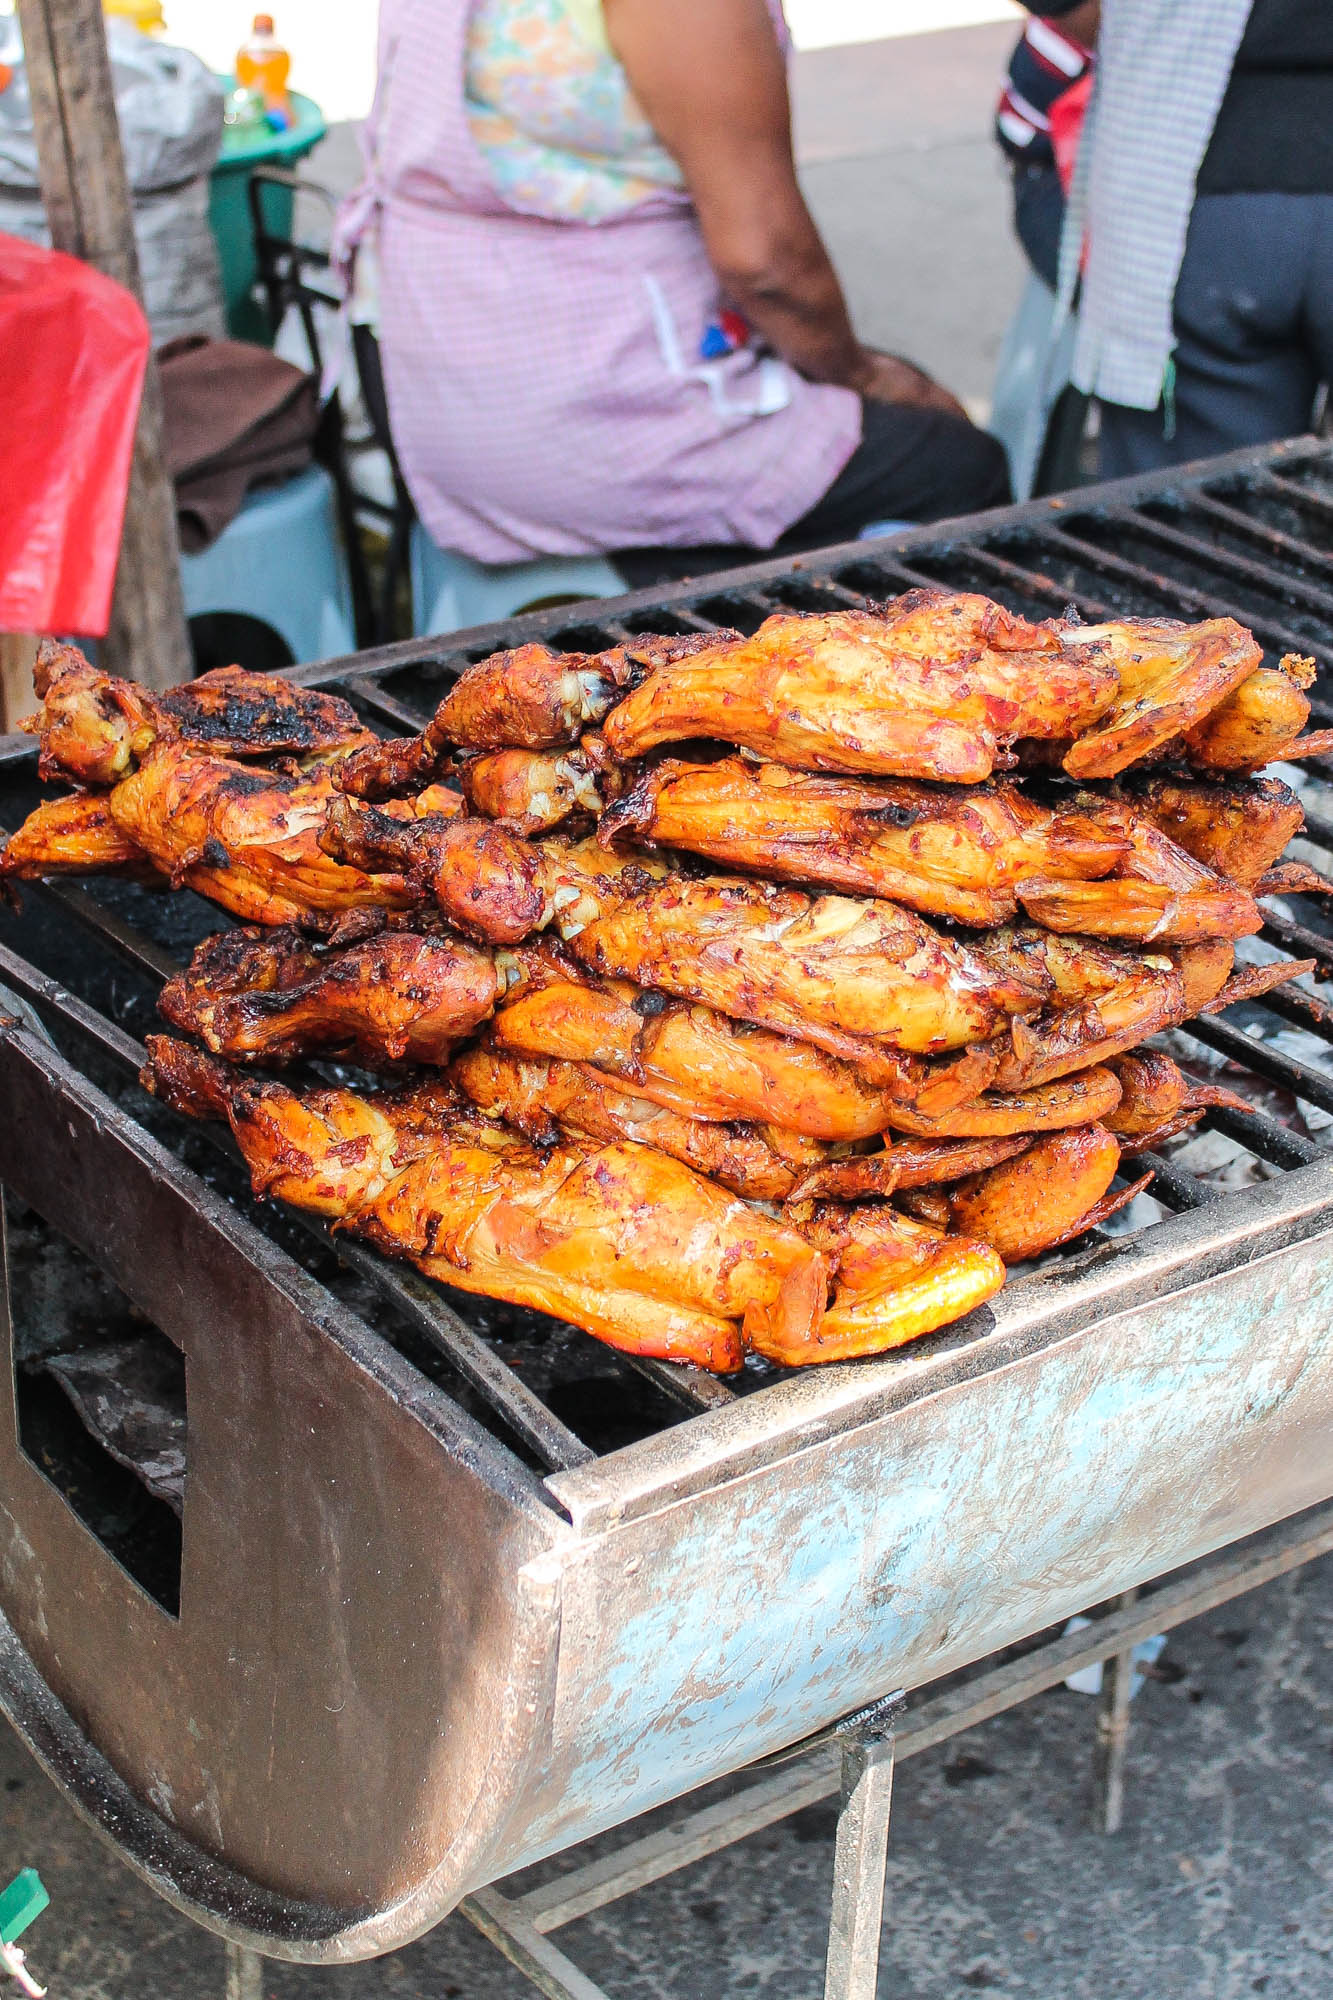 barbecued chicken at Tlacolula market || OAXACA CITY, MEXICO FOOD GUIDE || creamandhoney.ca